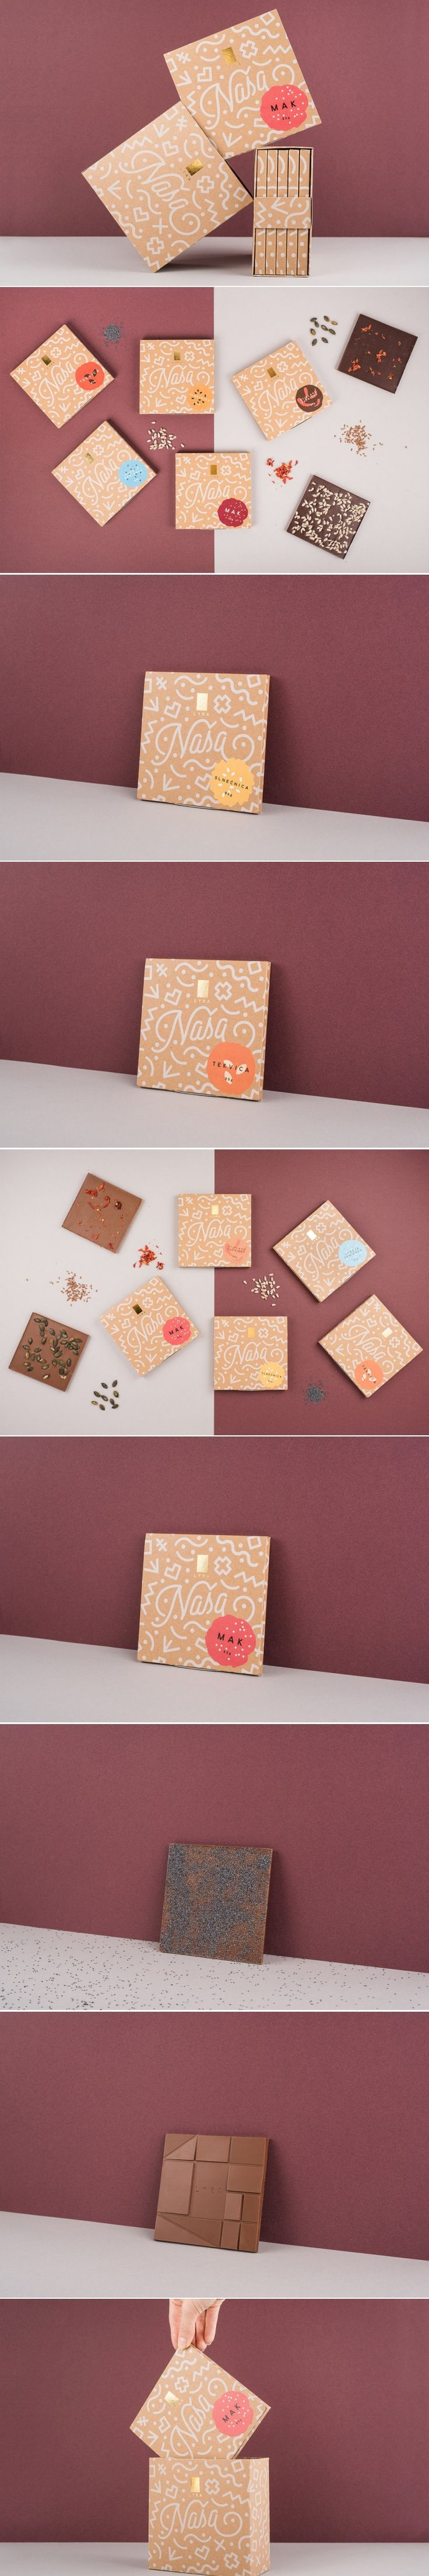 NAŠA is a Chocolate That Aims To Represent Slovakia Through Graphics — The Dieline   Packaging & Branding Design & Innovation News